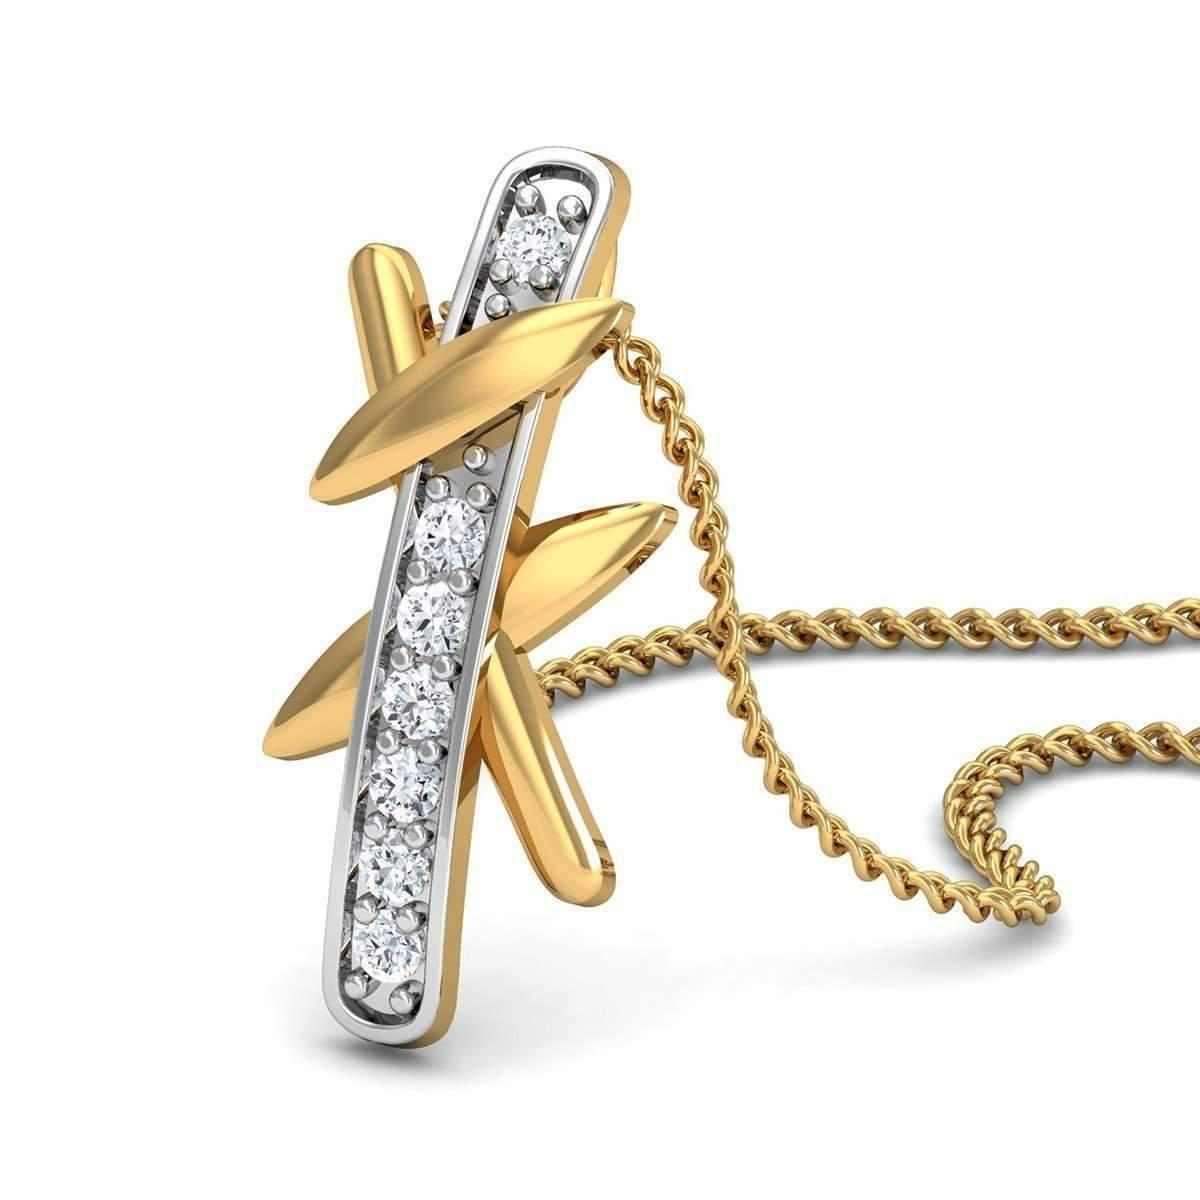 Diamoire Jewels Excellent Cut Diamonds and 18kt Yellow Gold in a Pave Setting SbWFloSVD6